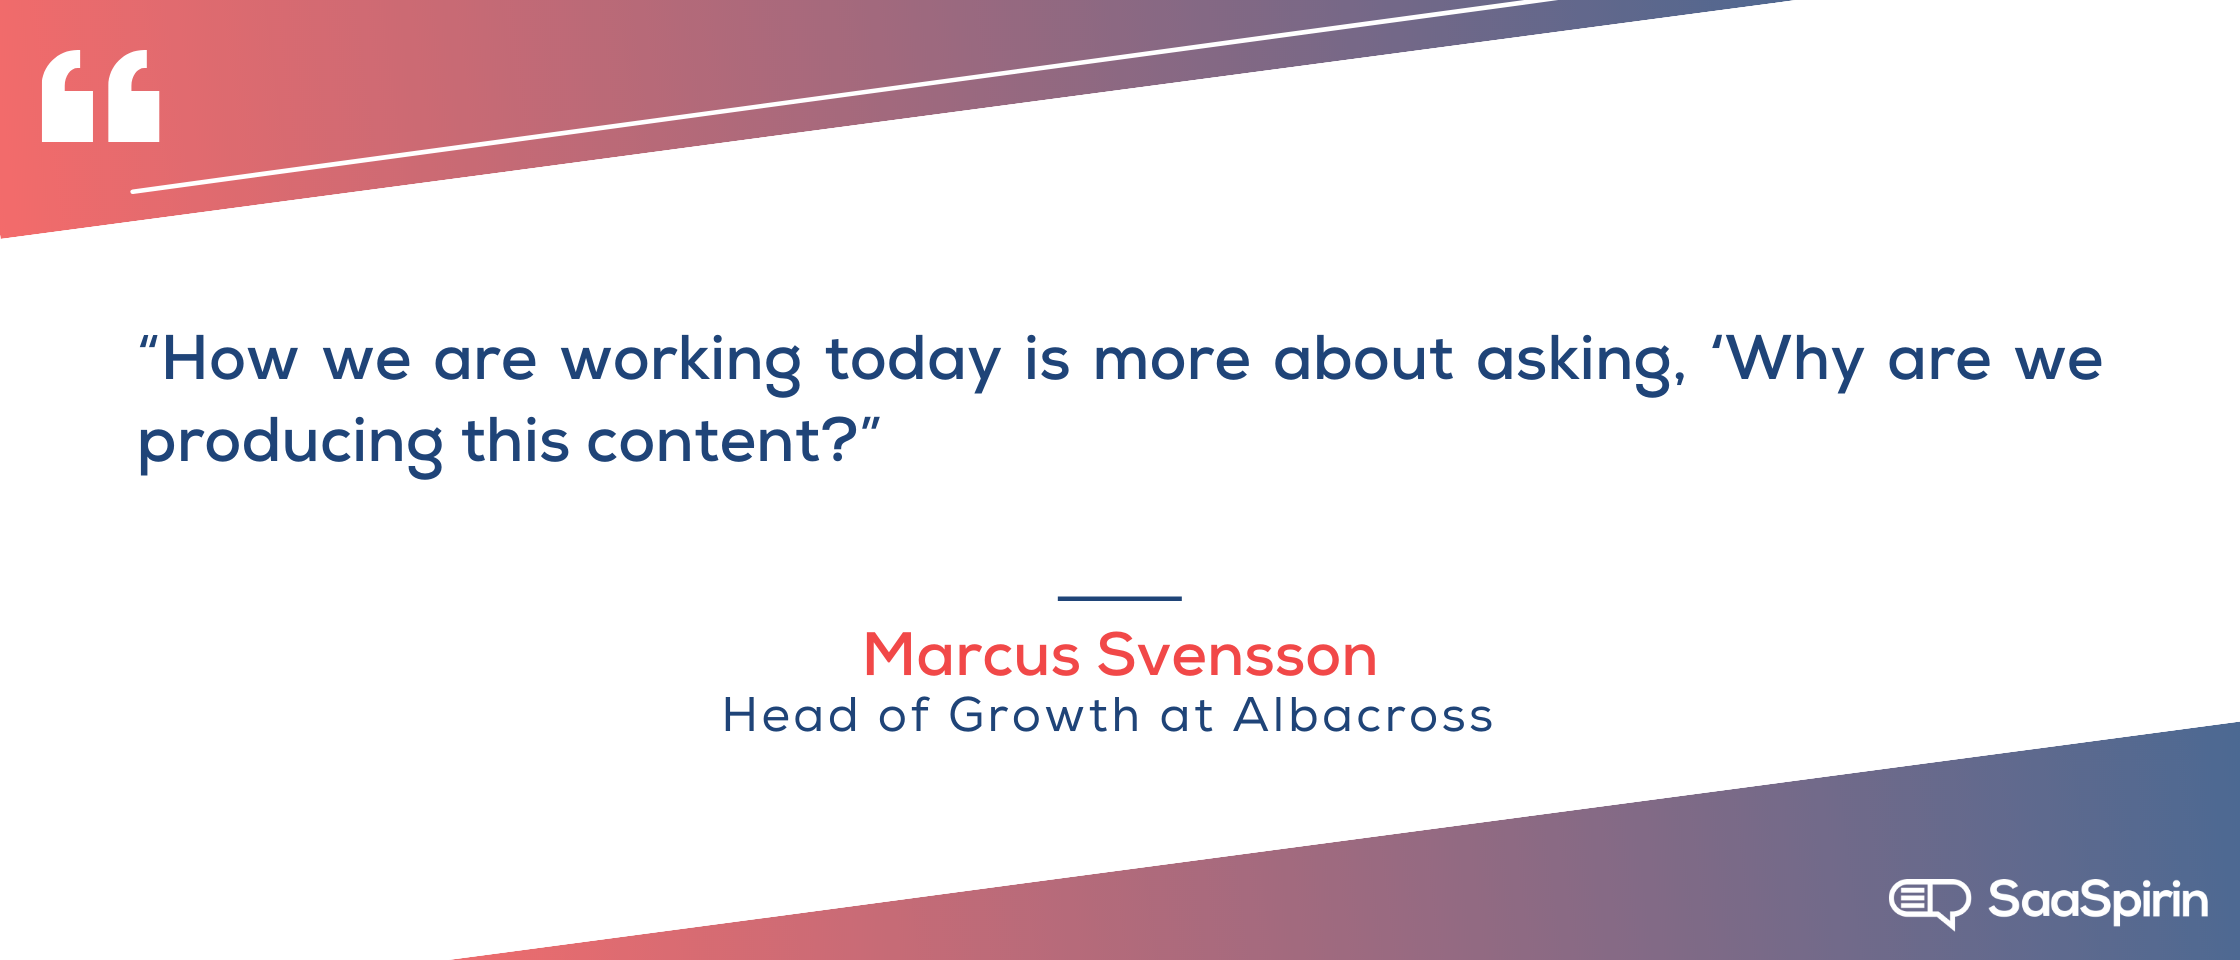 How-we-are-working-today-is-more-about-asking-Why-are-we-producing-this-content.png